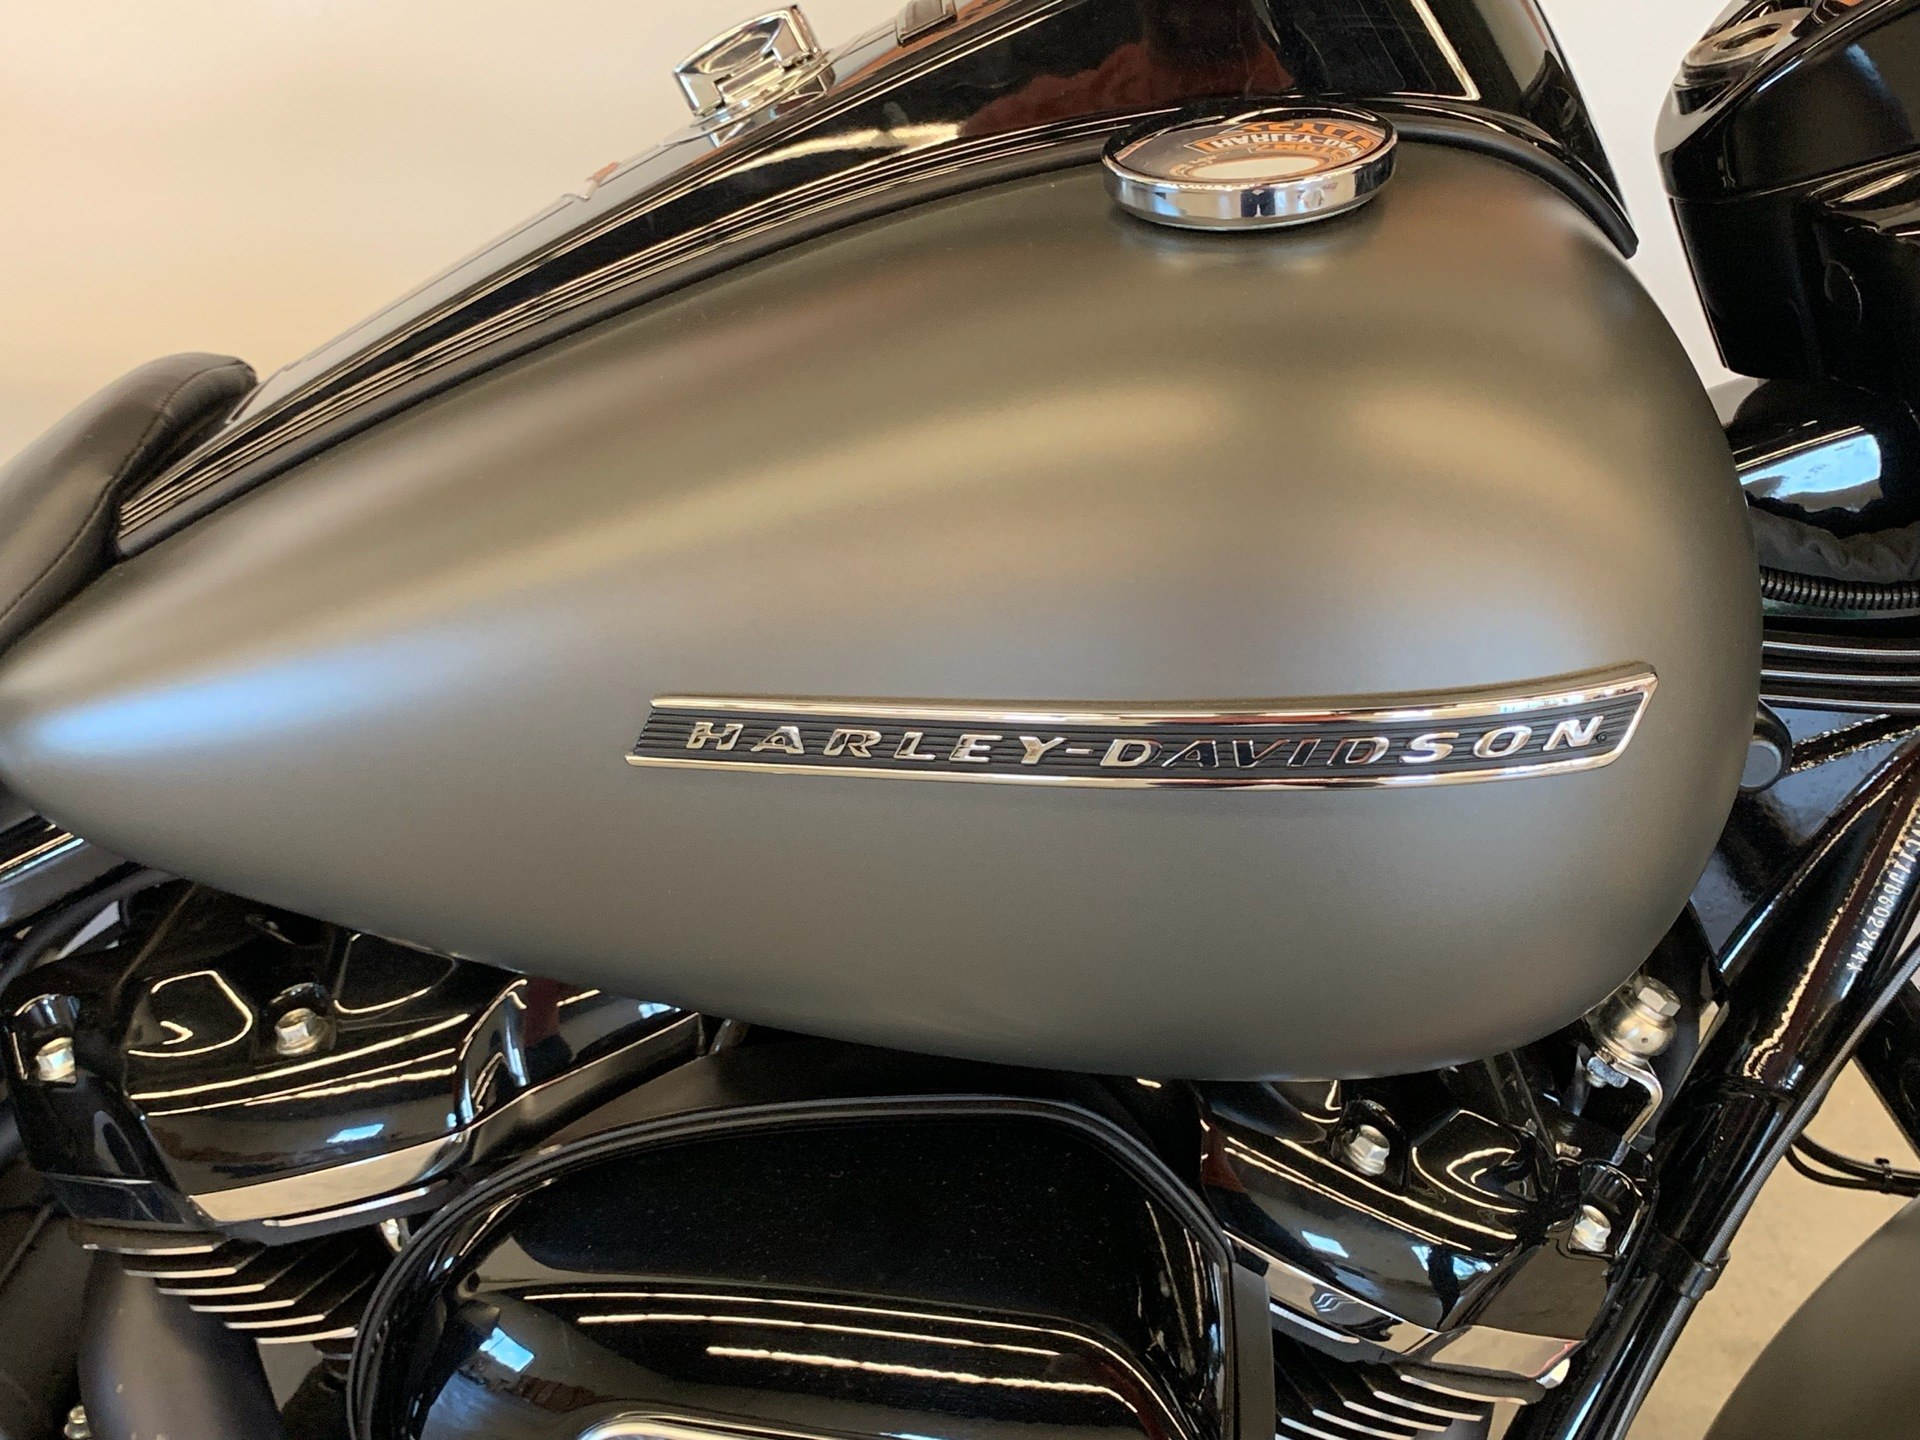 2018 Harley-Davidson Road King® Special in Flint, Michigan - Photo 11